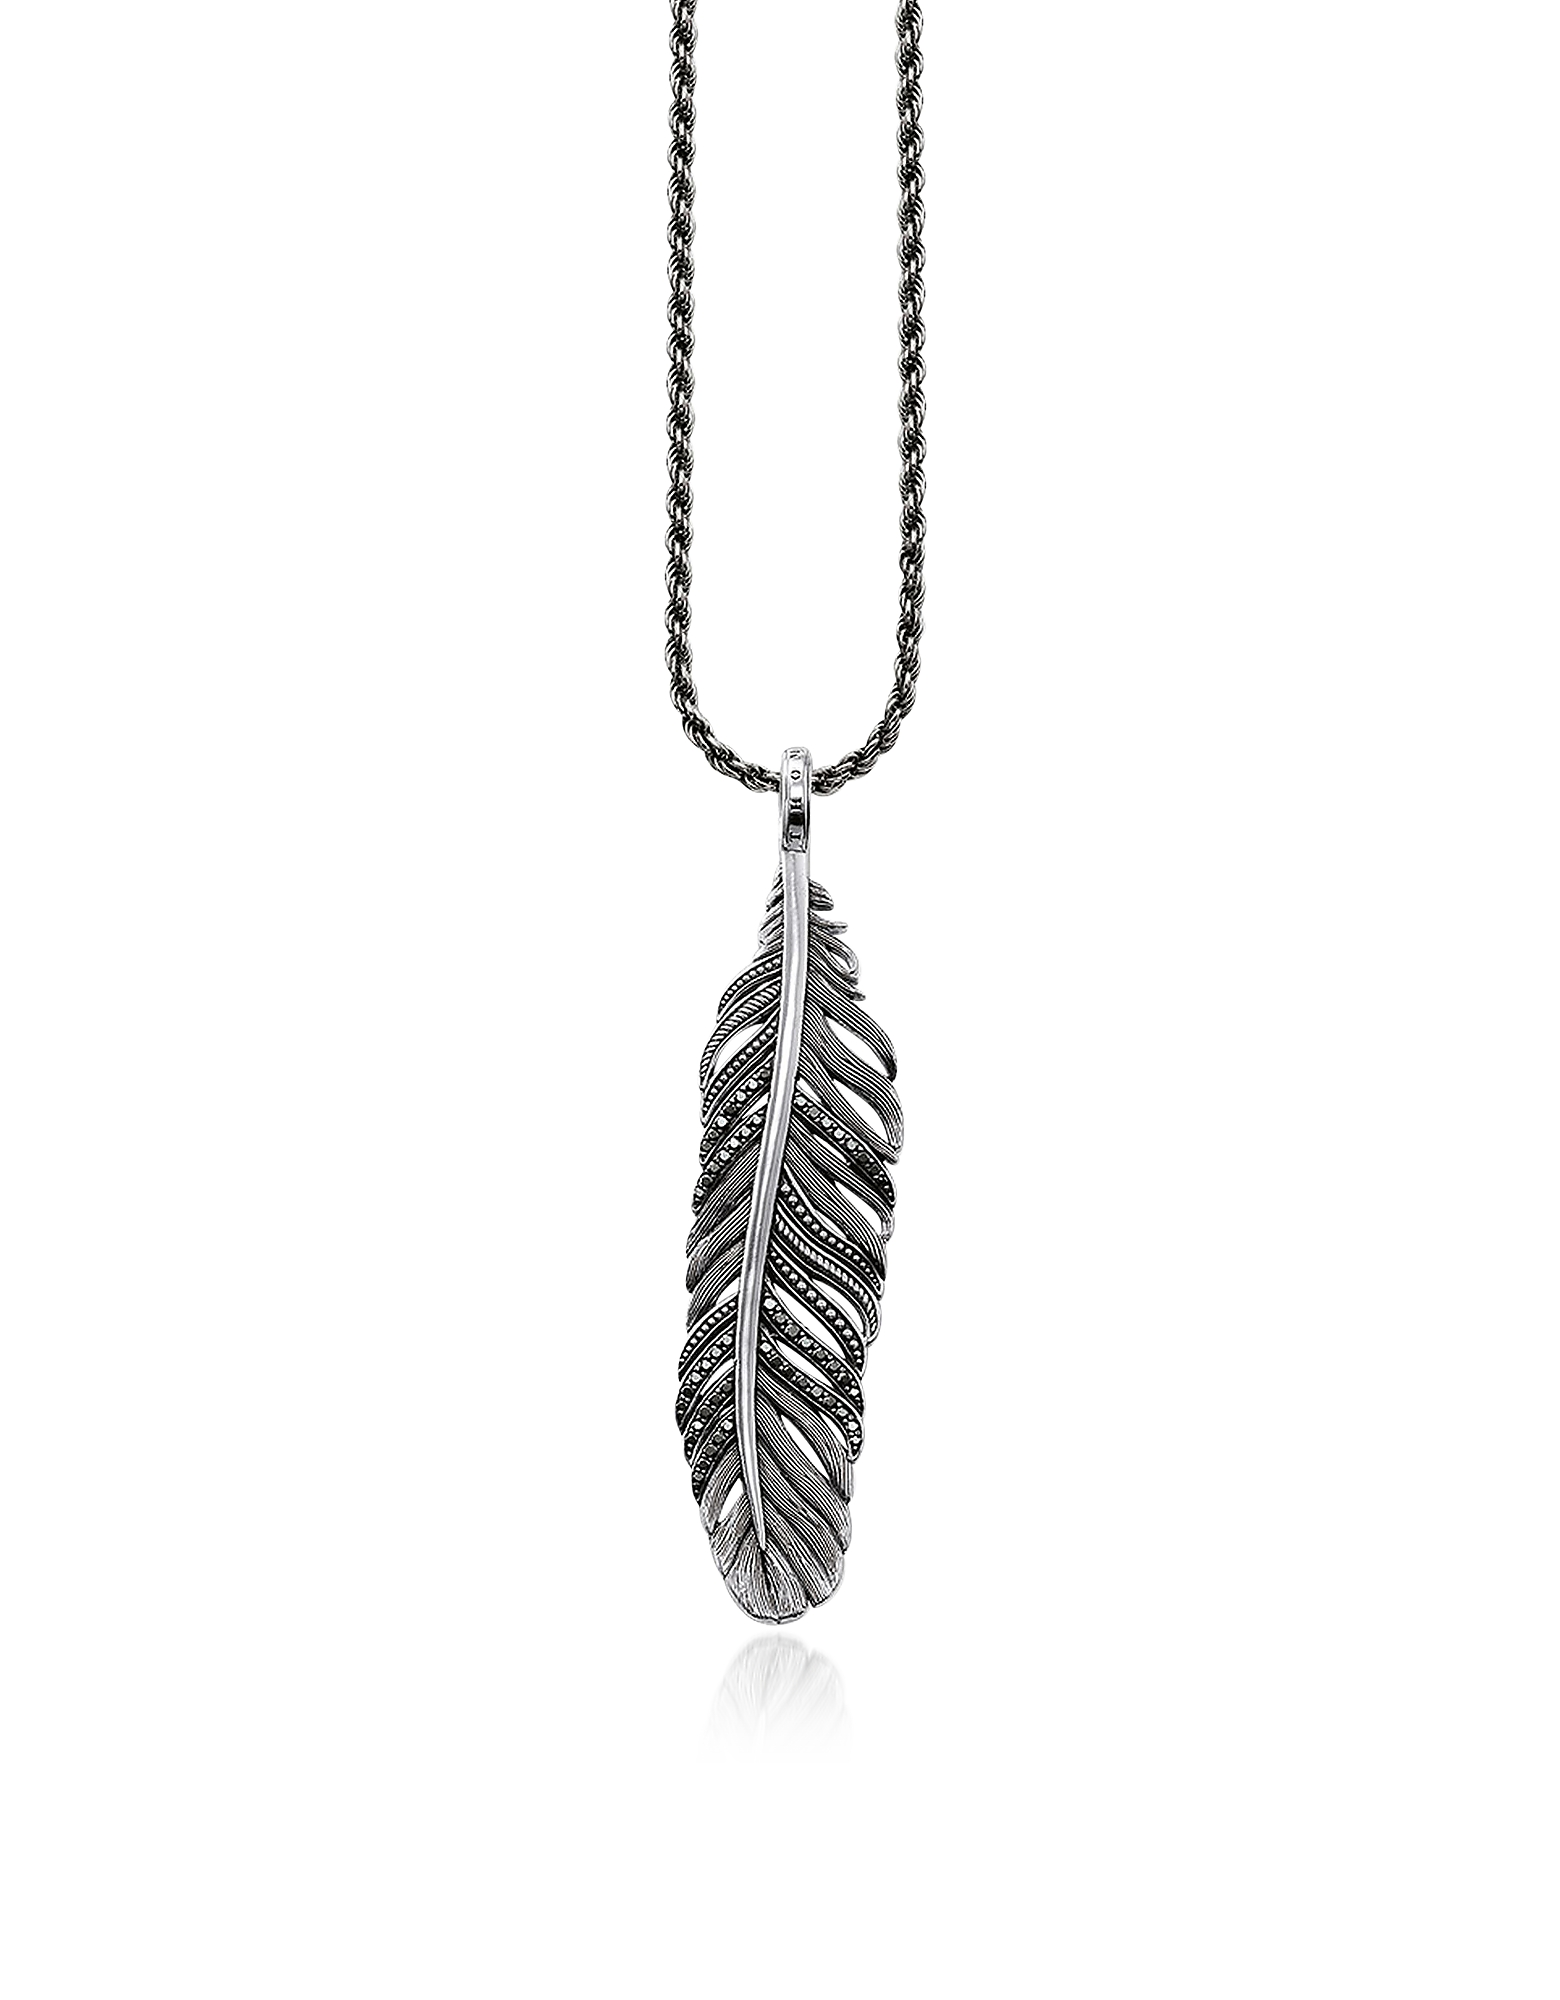 Blackened Sterling Silver Necklace w/ Feather Pendant and Black Cubic Zirconia